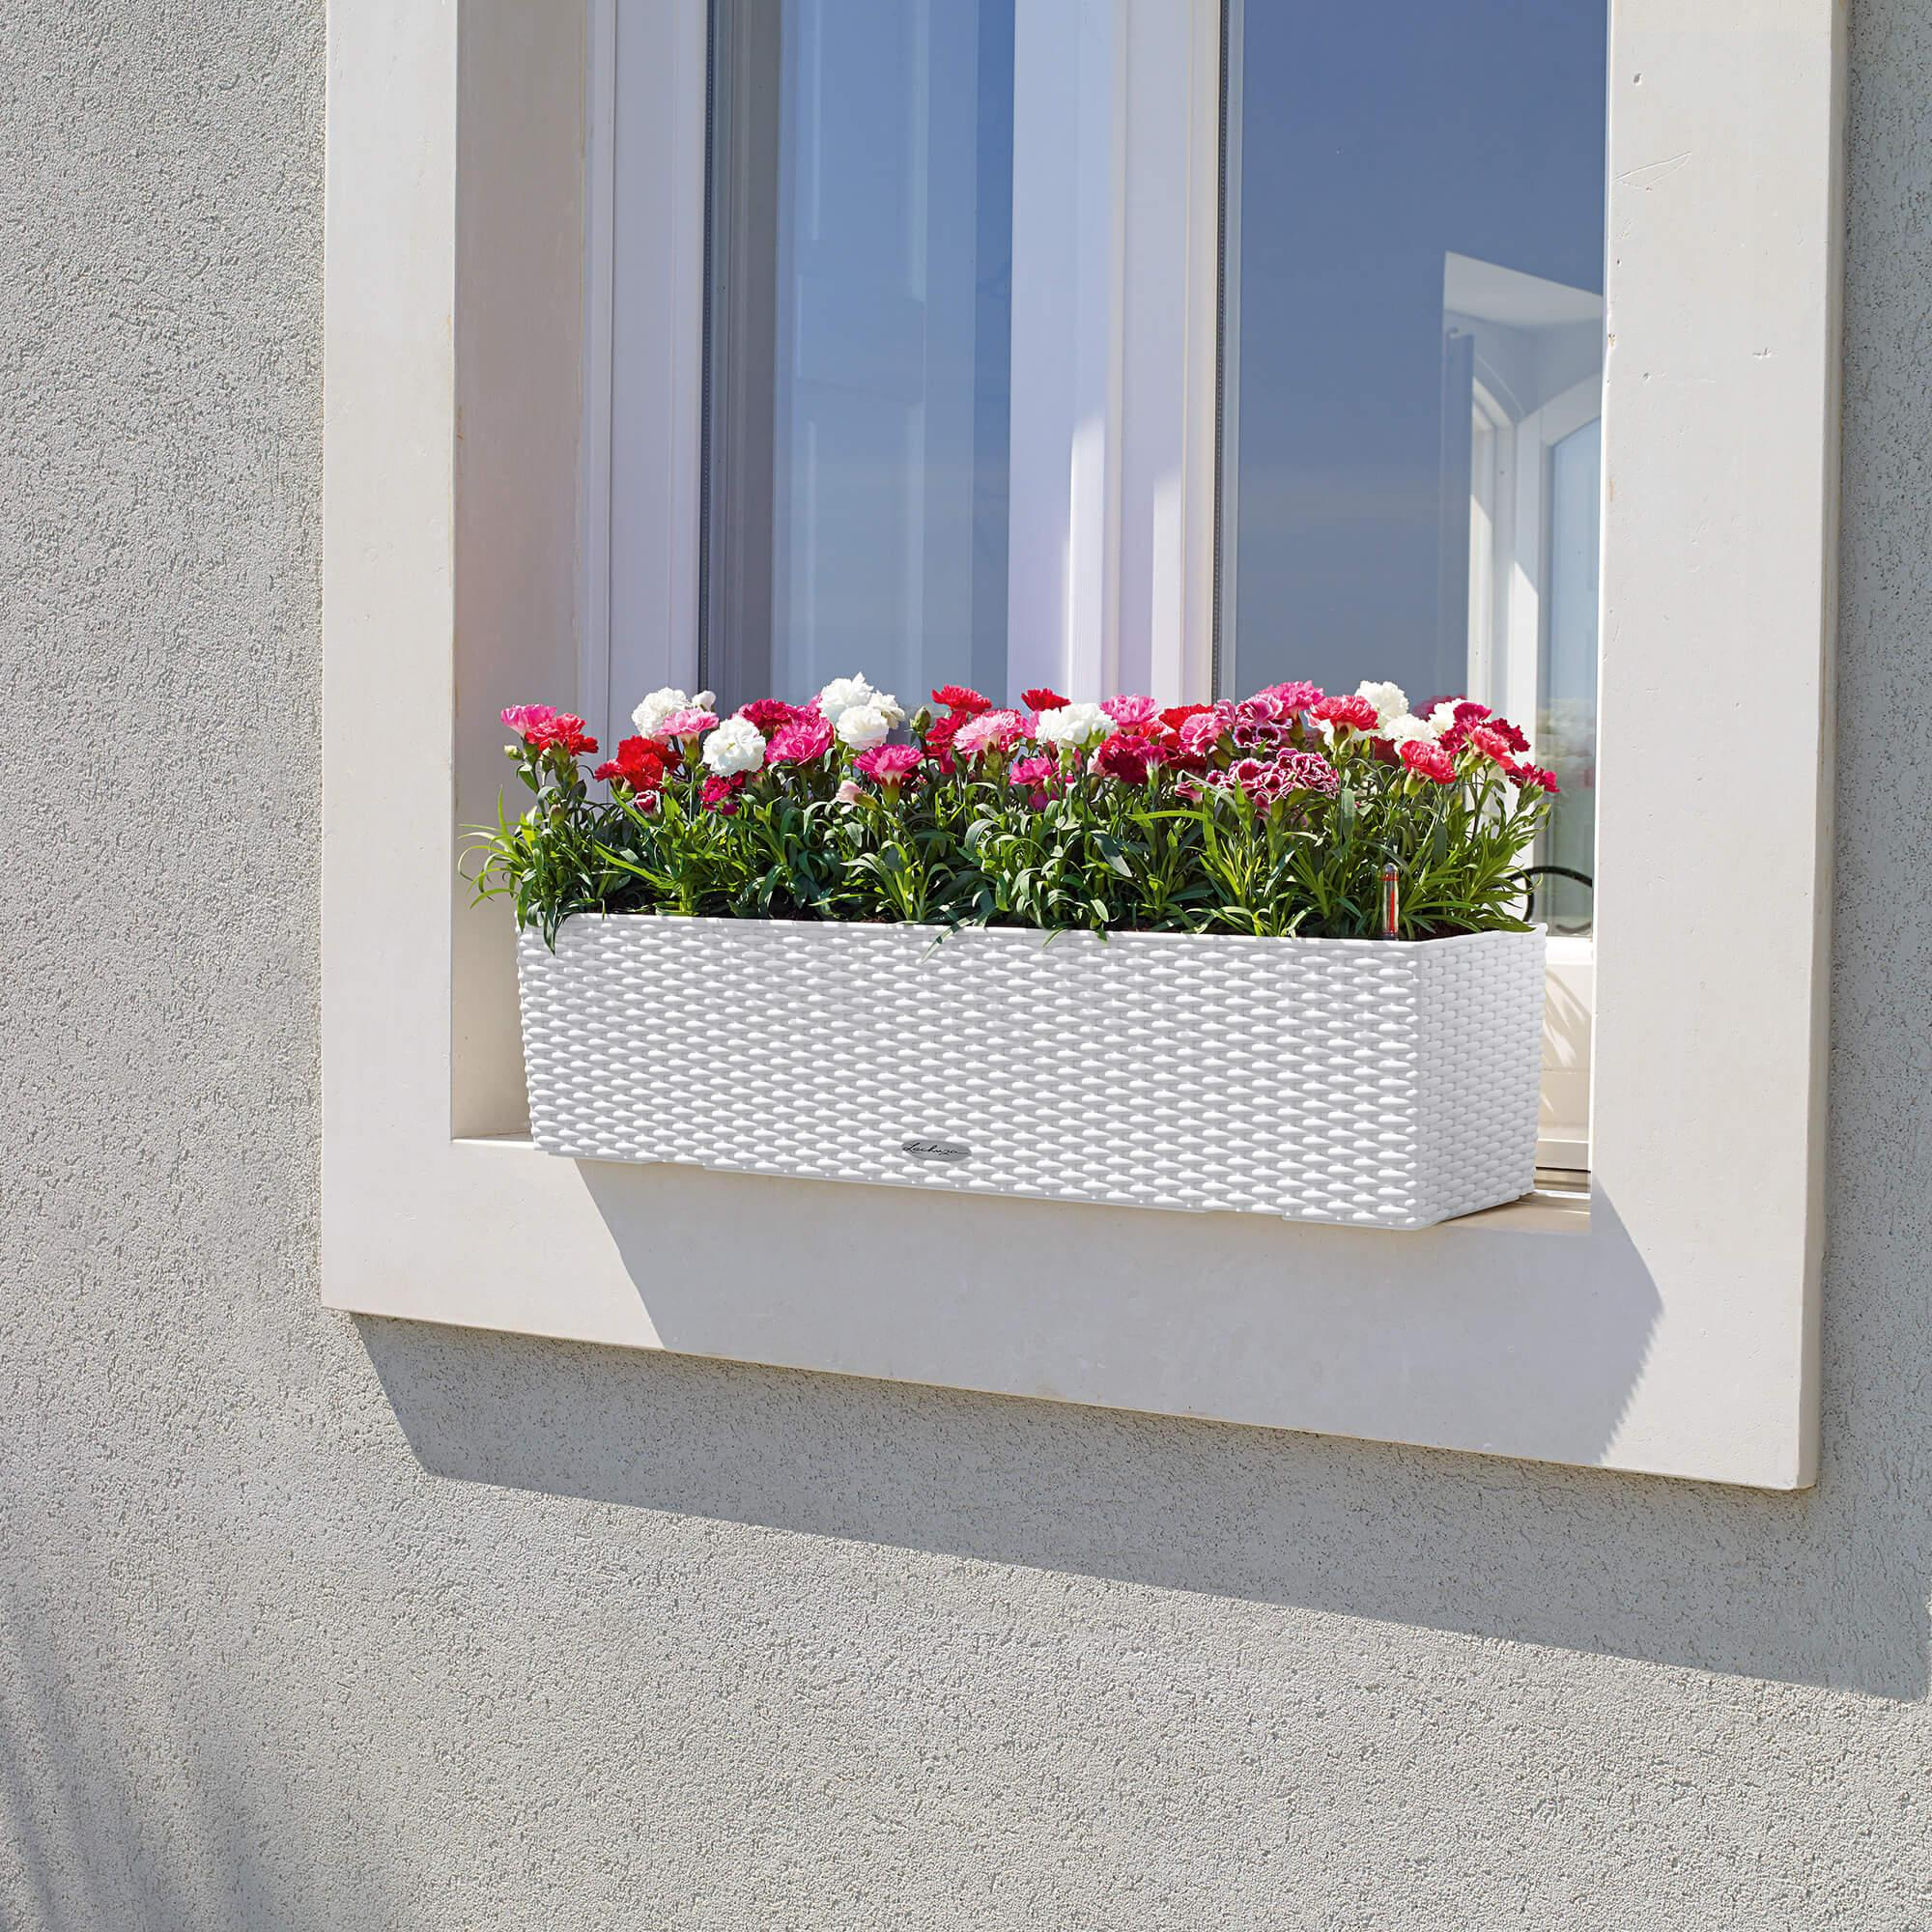 le_balconera-cottage80_product_addi_01